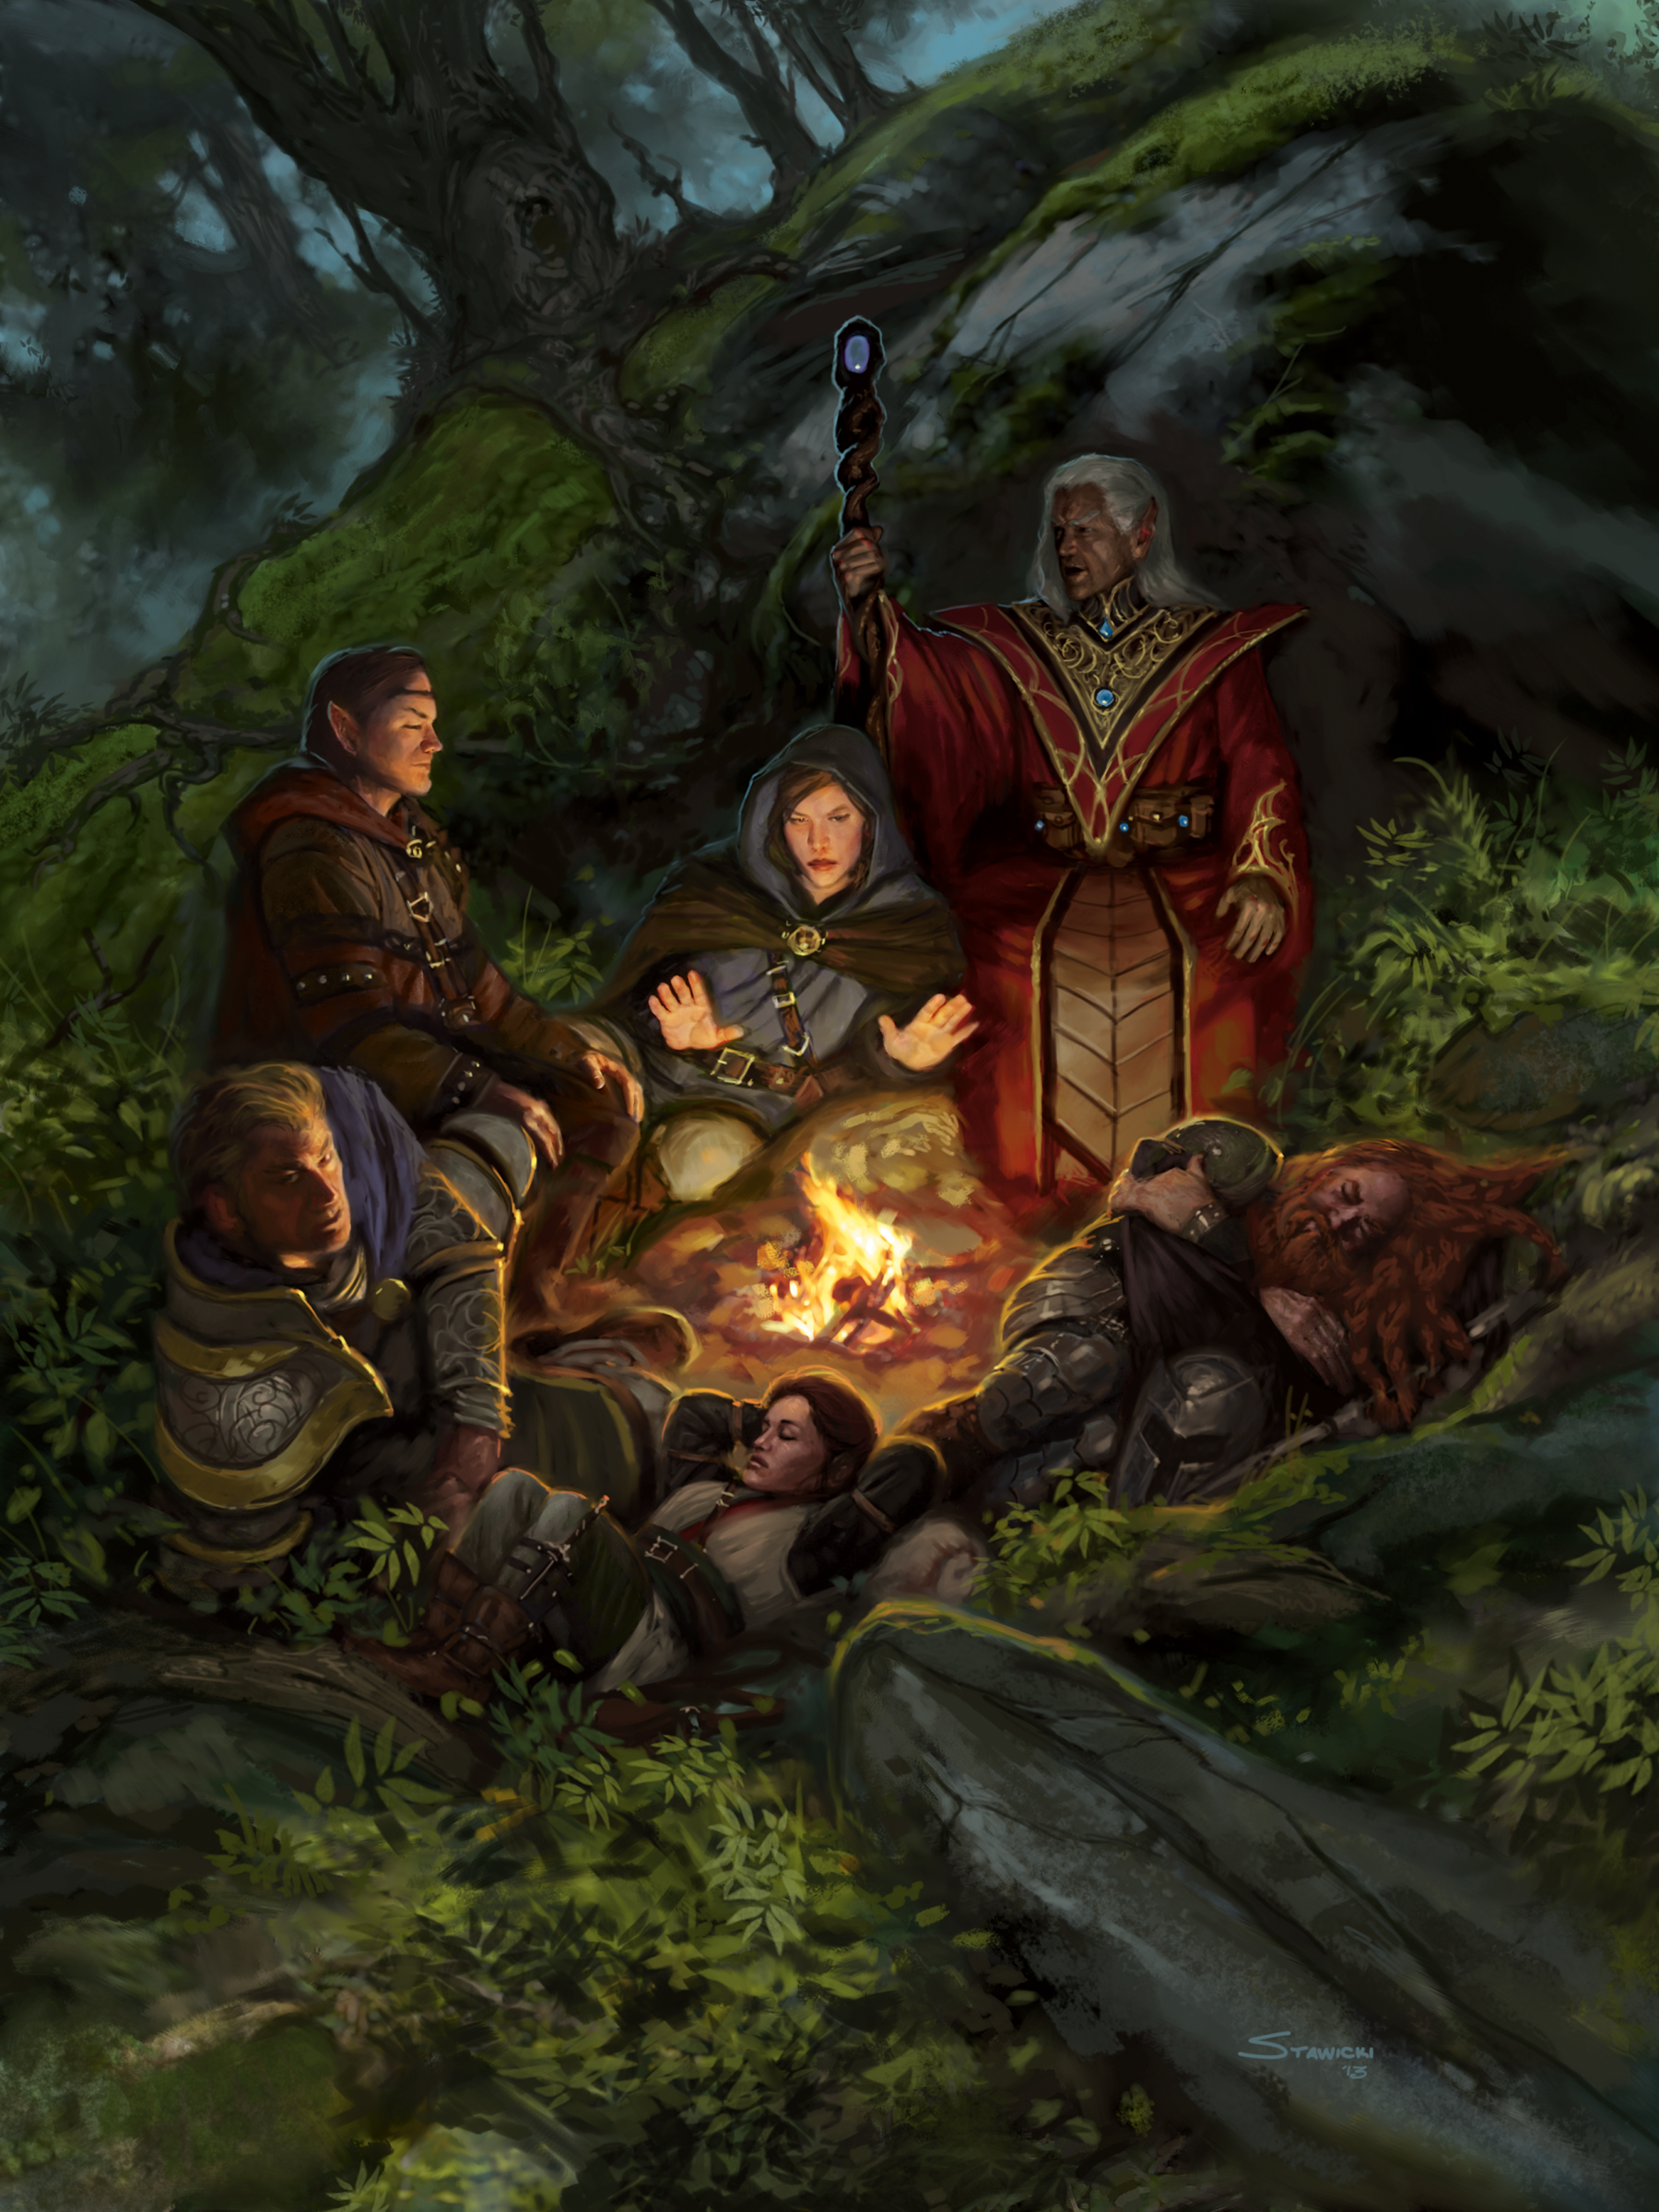 An image of some Dungeons and Dragons characters gathered round a campfire in a forest